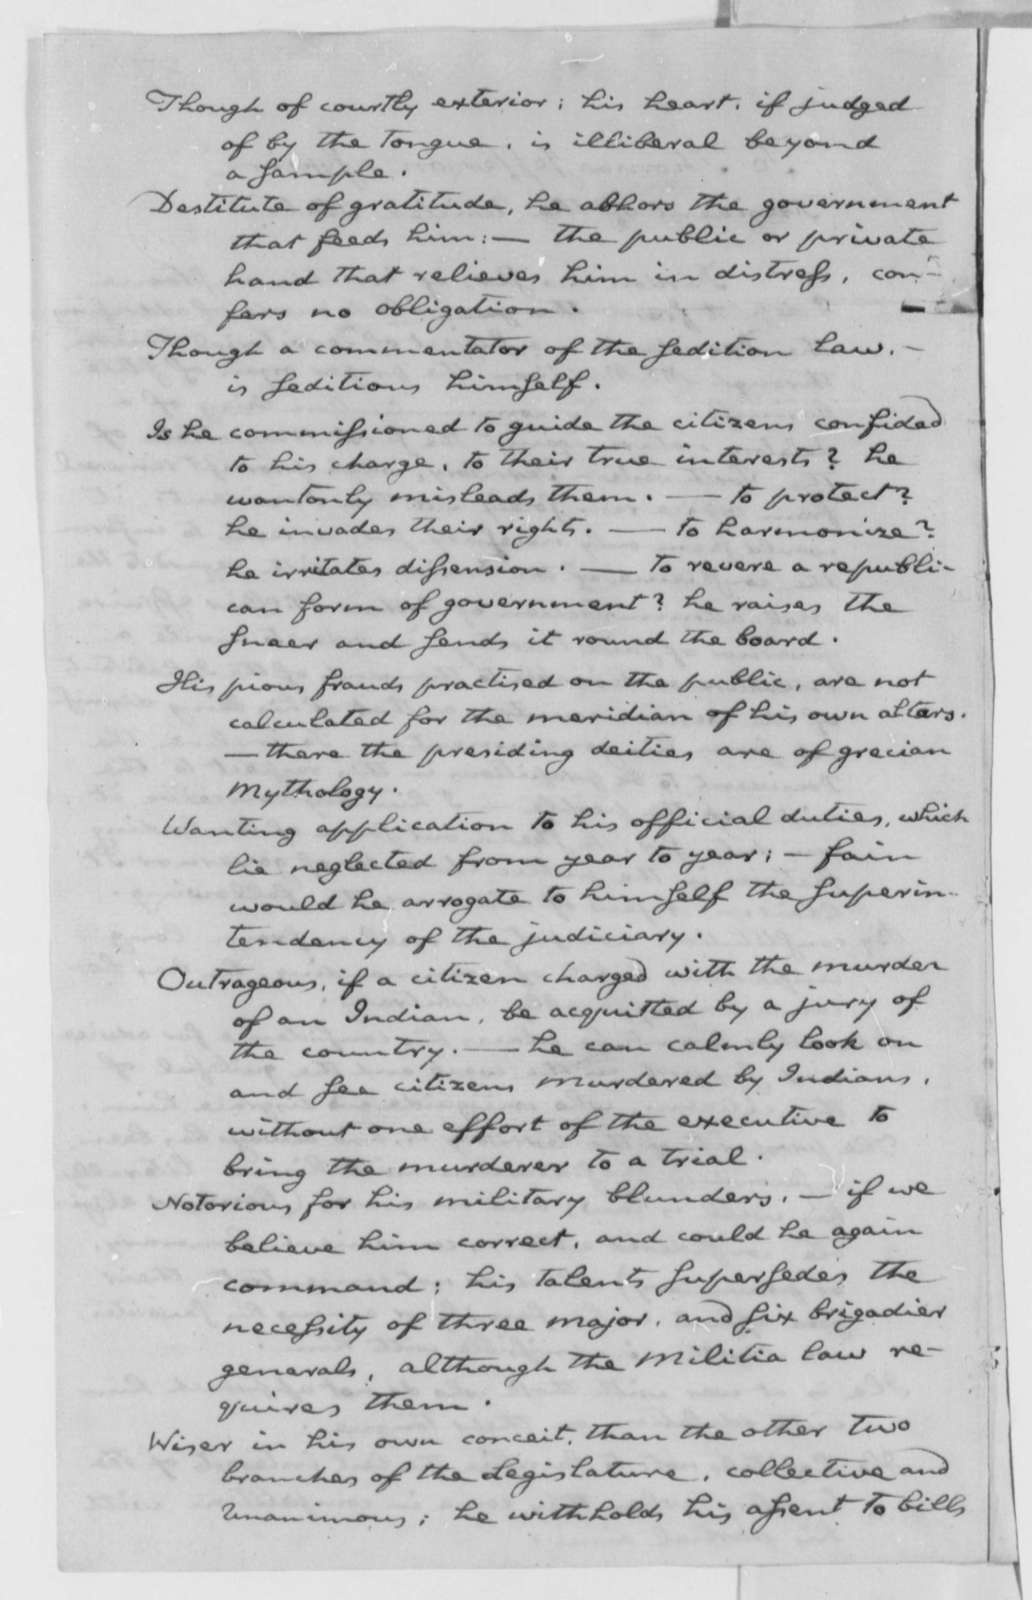 John Cleves Symmes to Thomas Jefferson, January 23, 1802